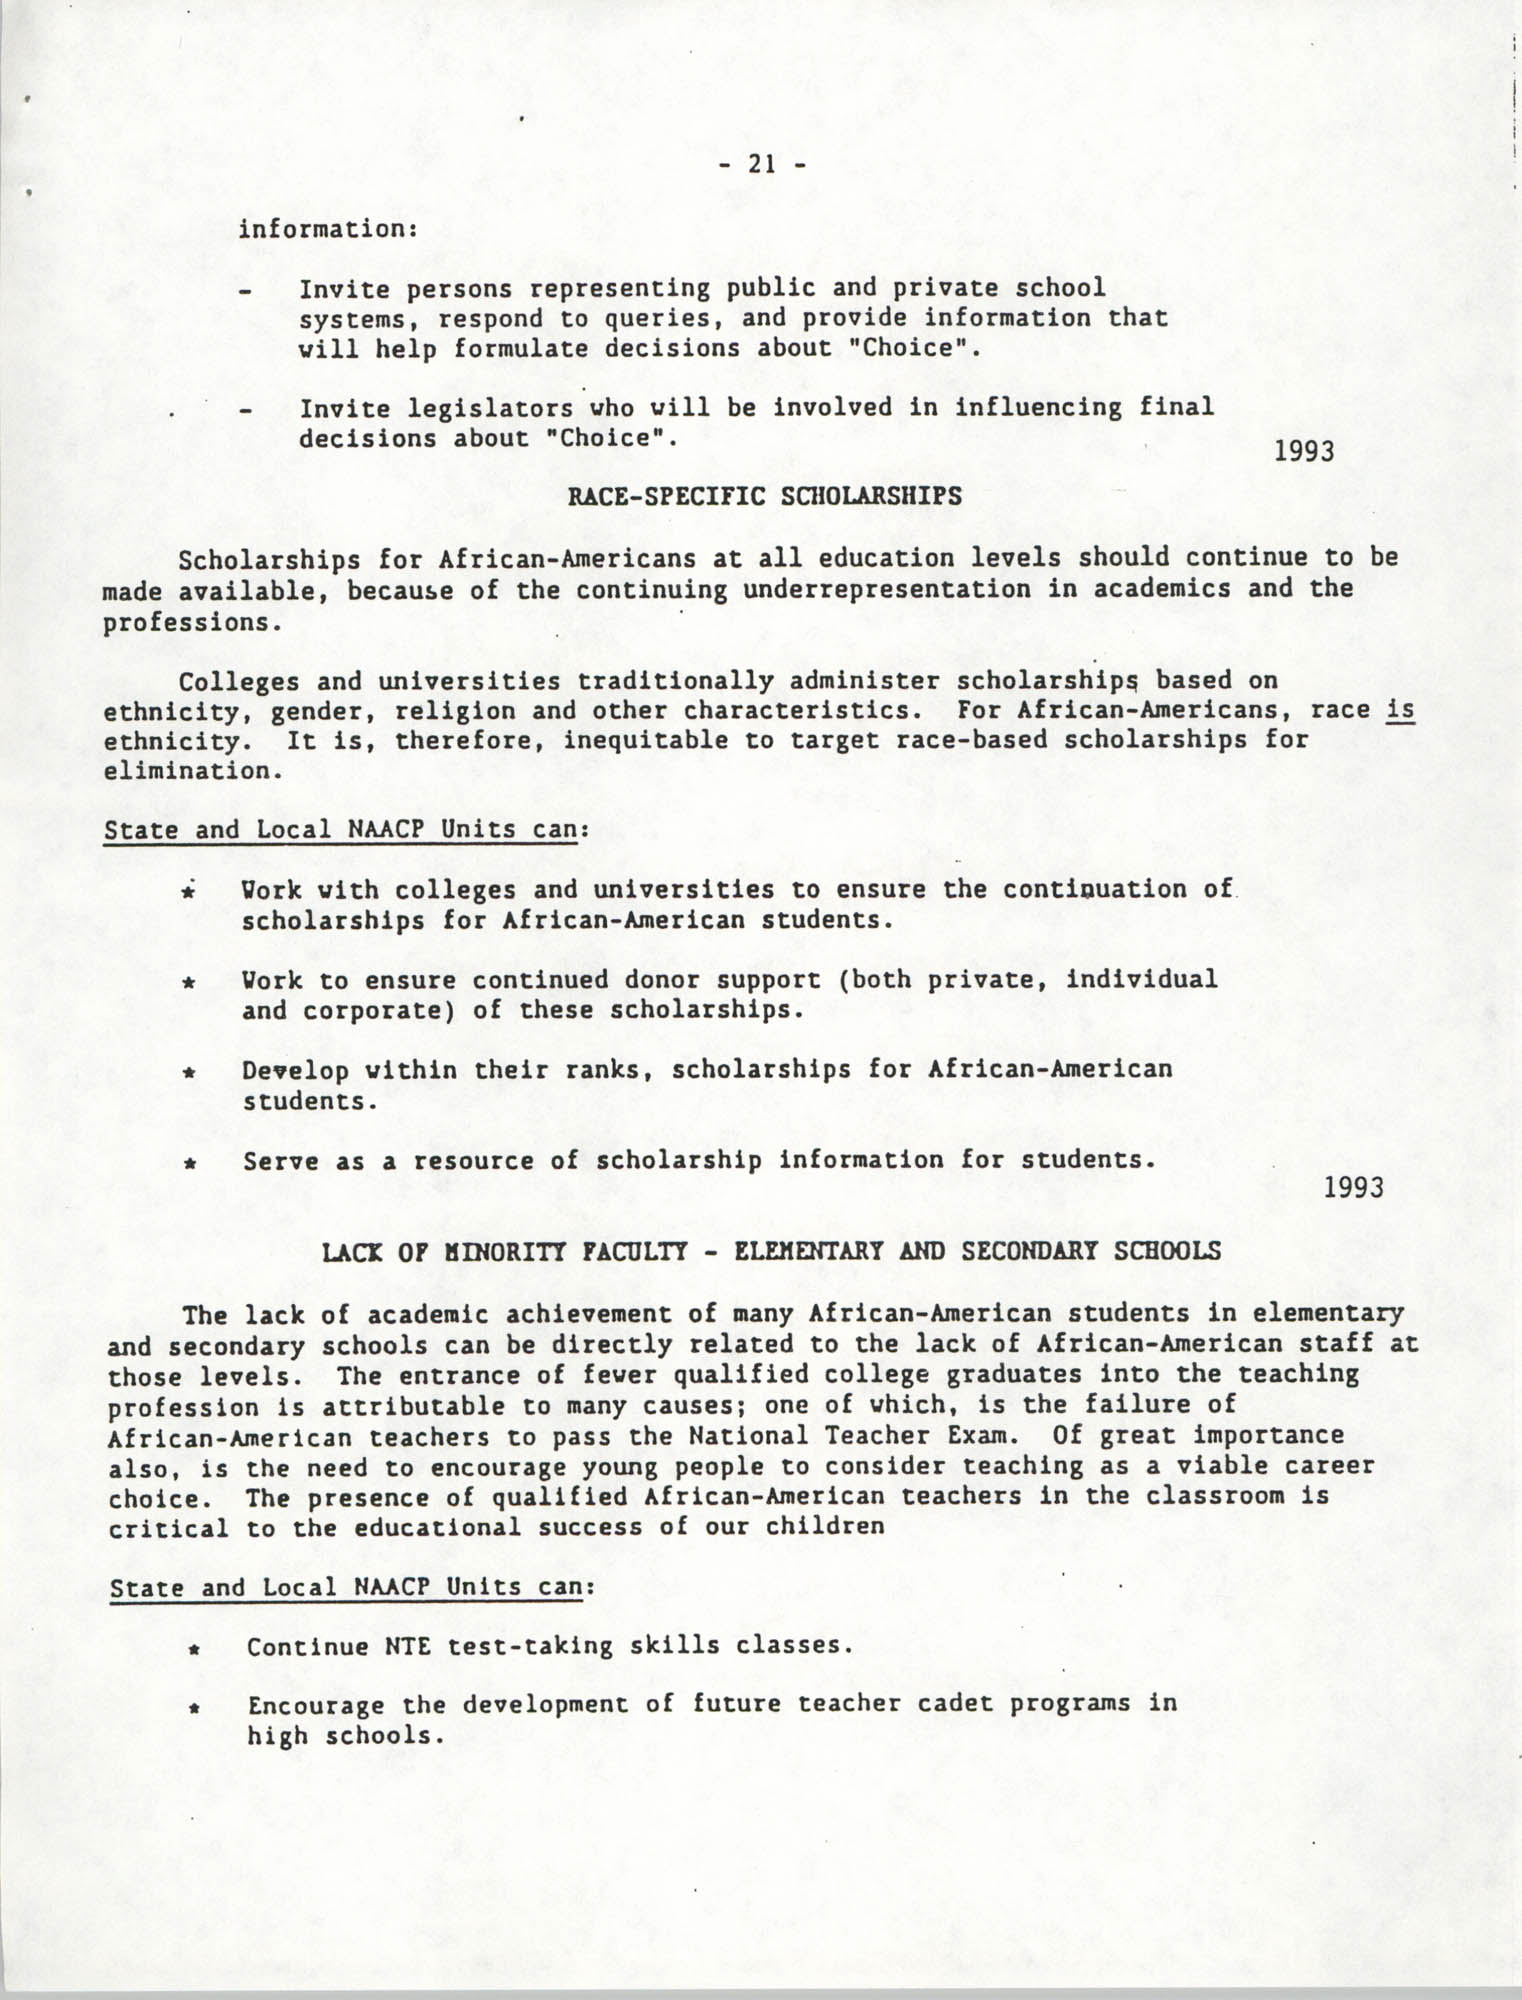 Education Resolutions 1993, Page 21